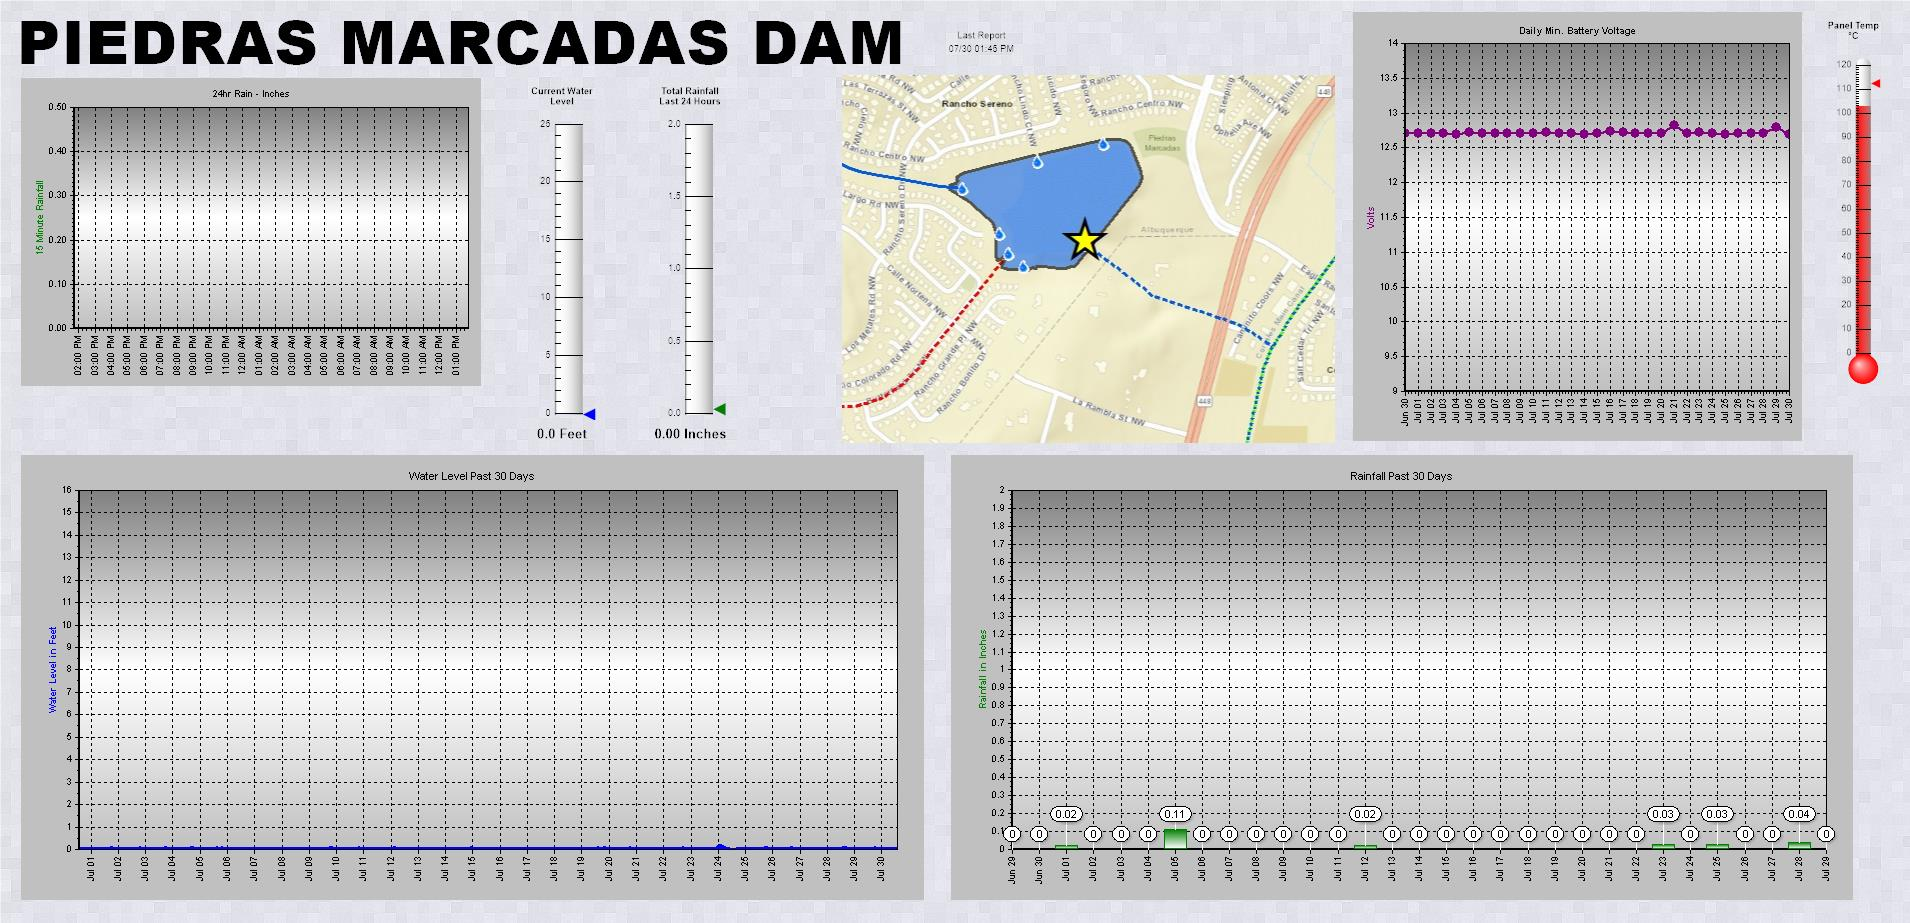 Piedras Marcadas Dam telemetry data